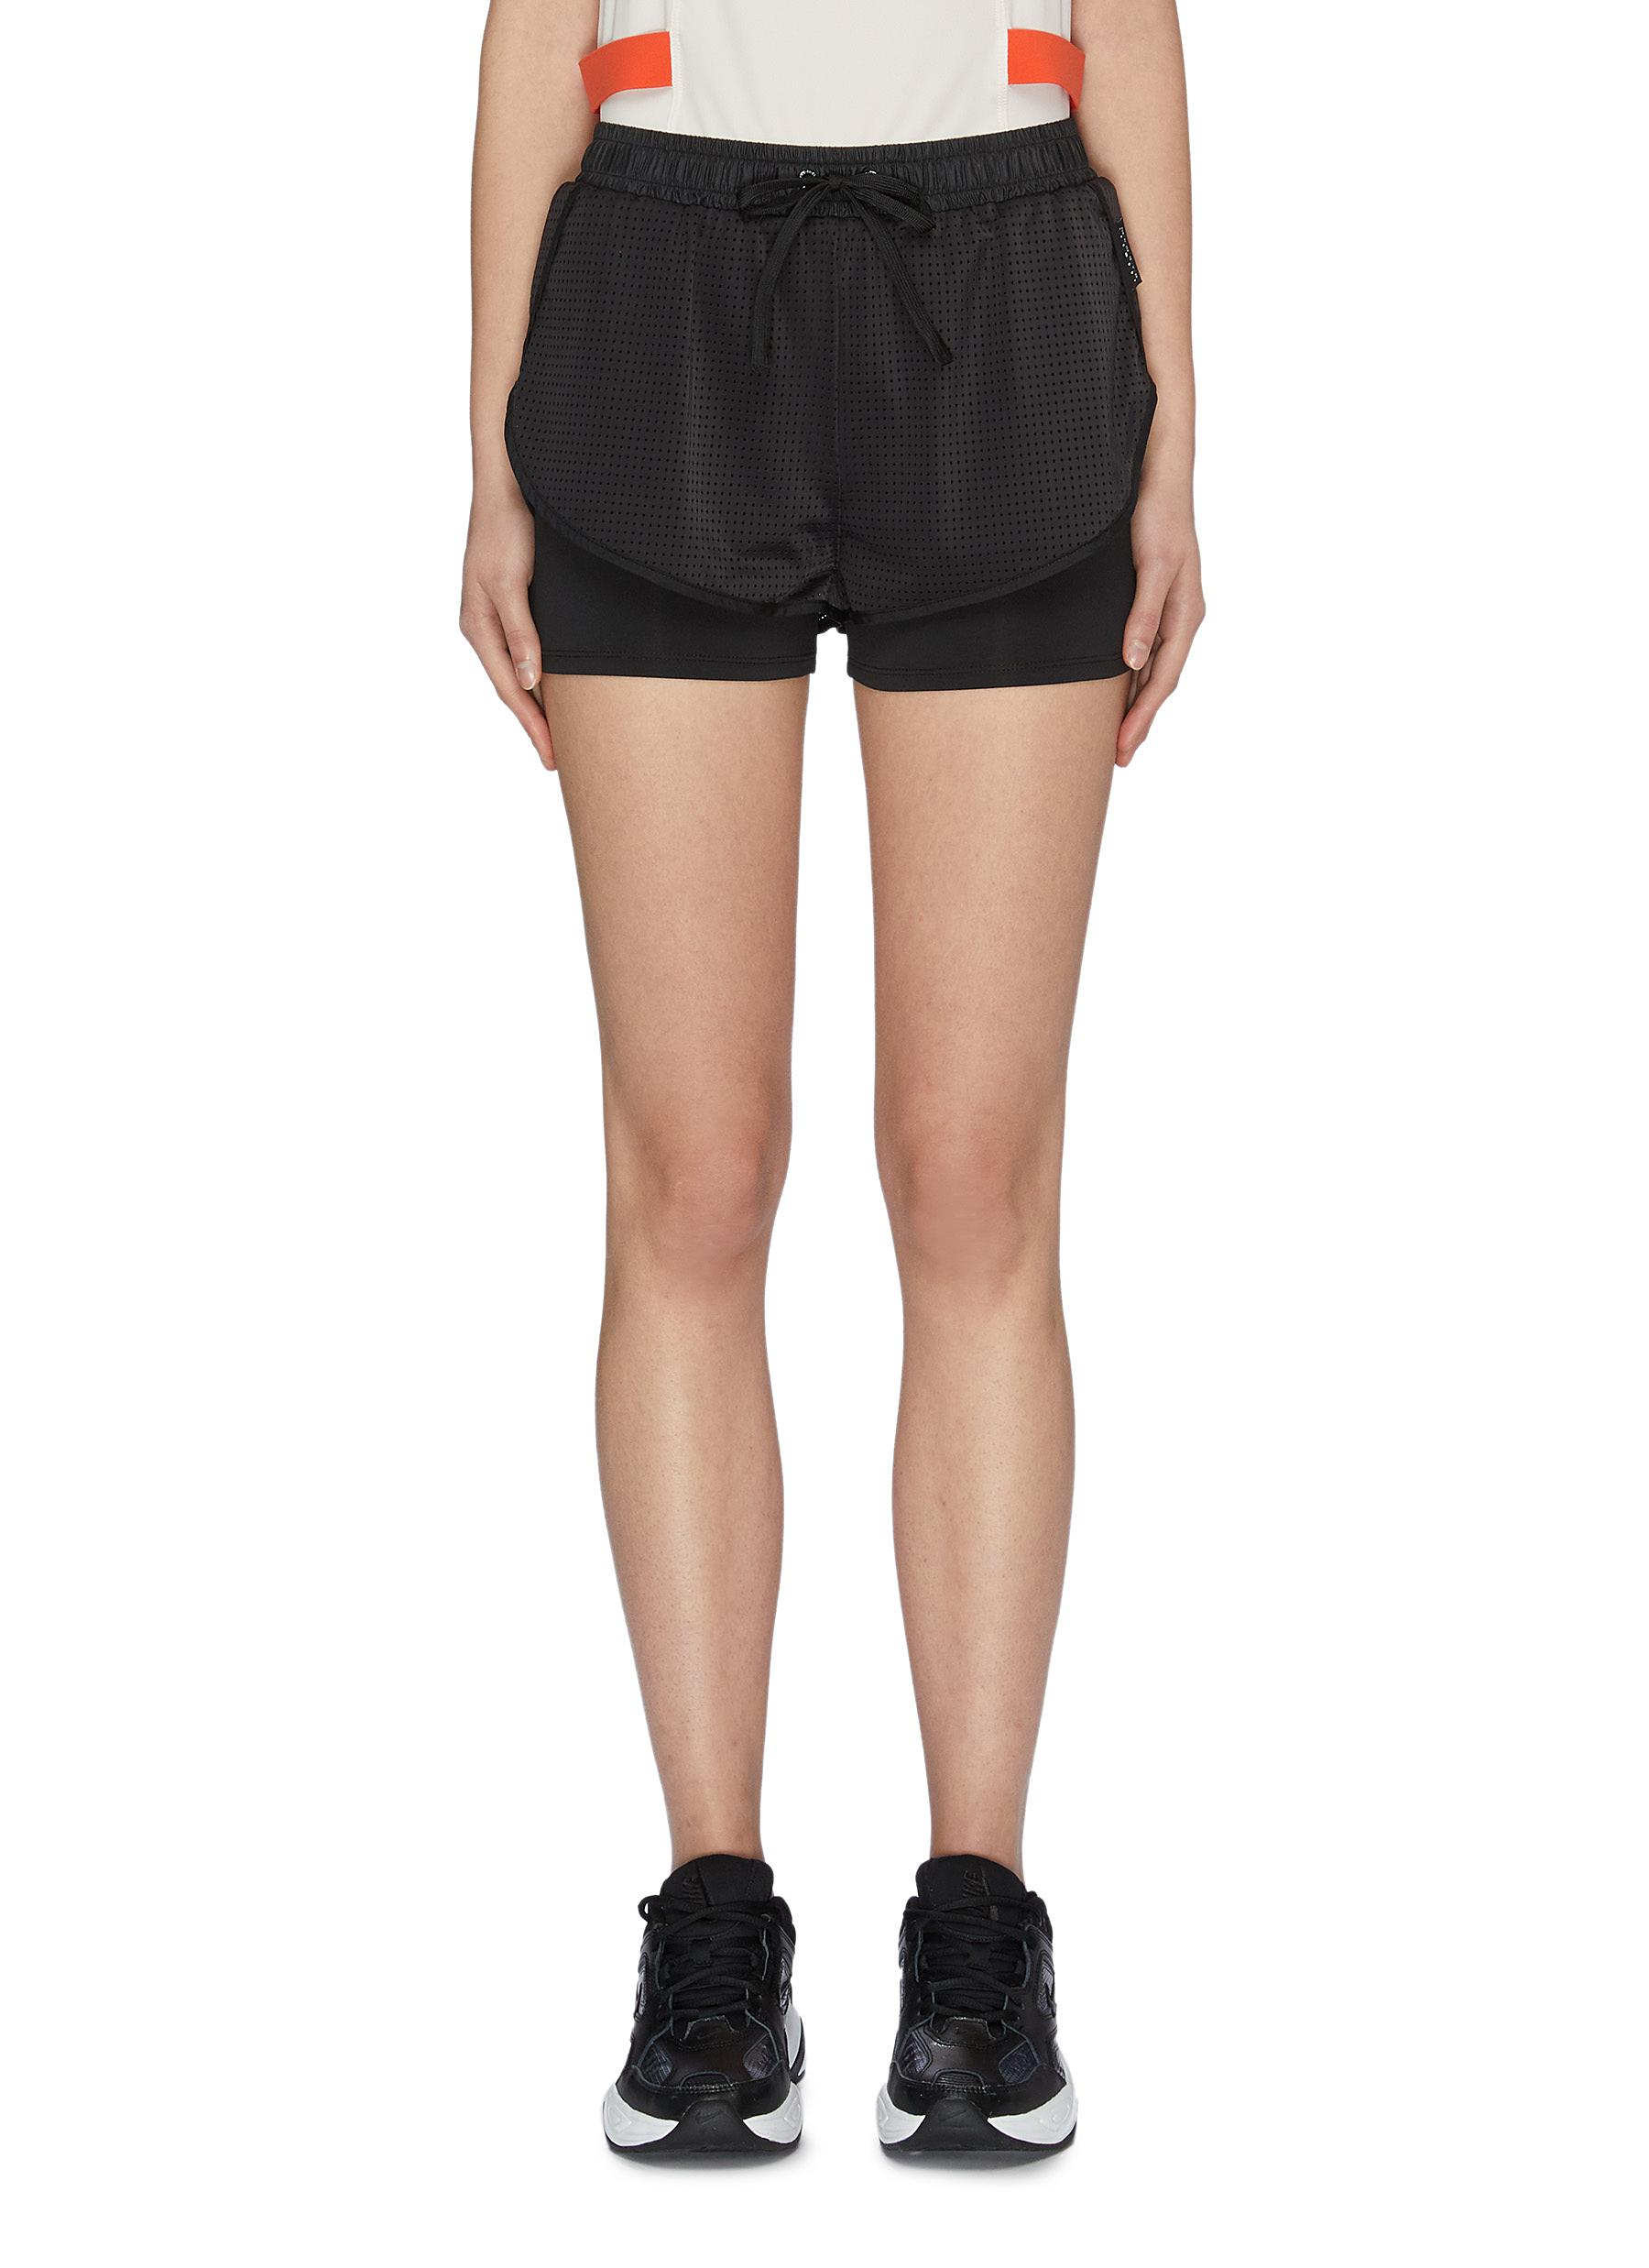 shop Particle Fever Layered running shorts online